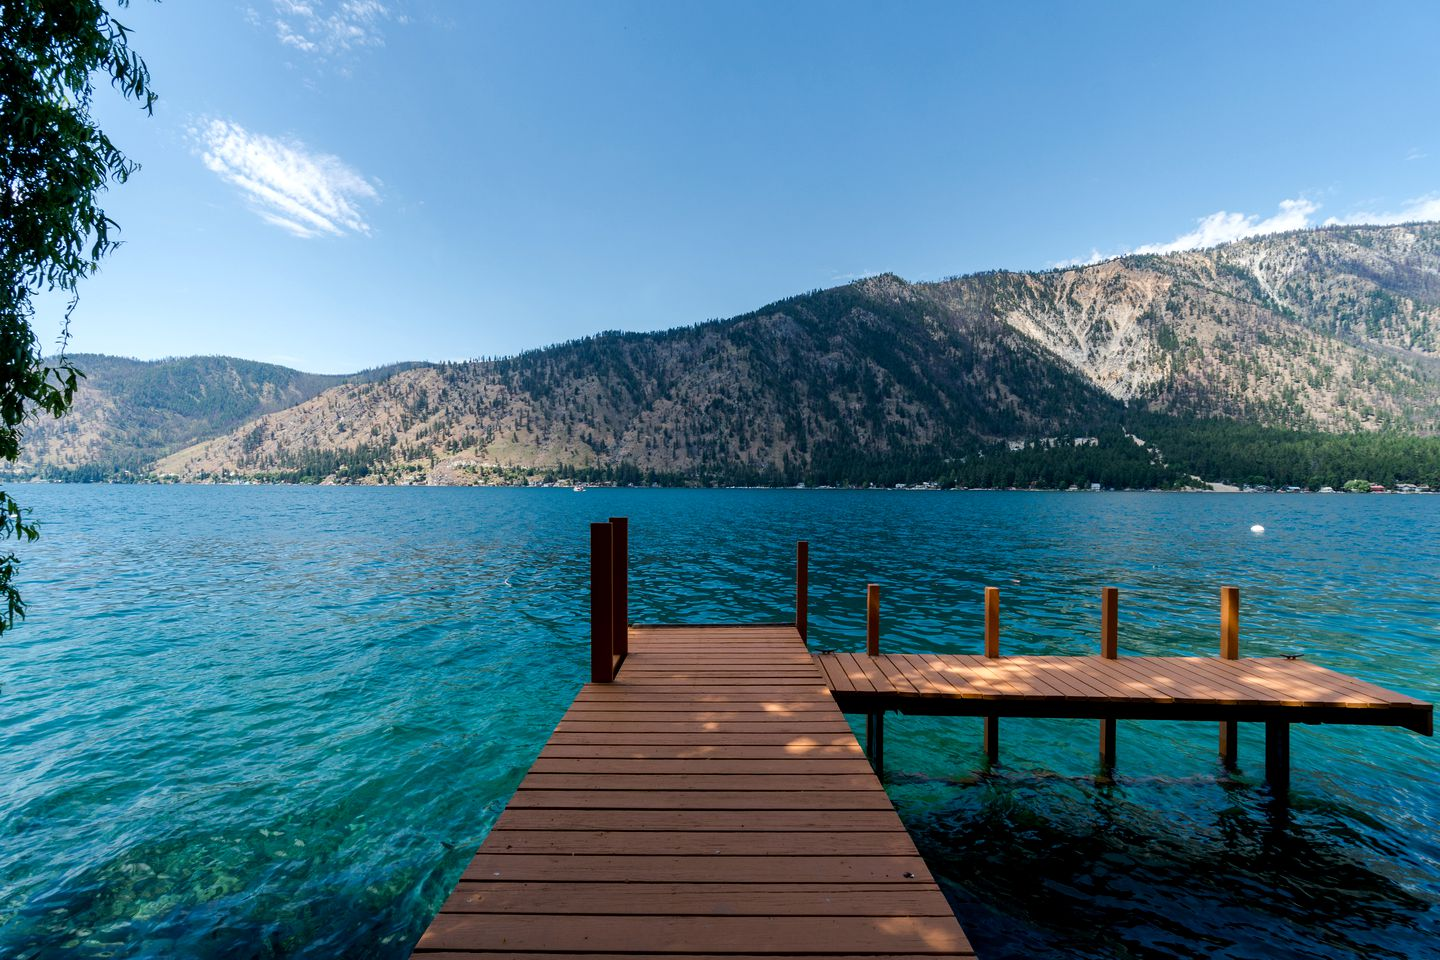 The water shines irresistible shades of blue at Lake Chelan. Boat rentals, lakeside walks and lazy days on the pier await